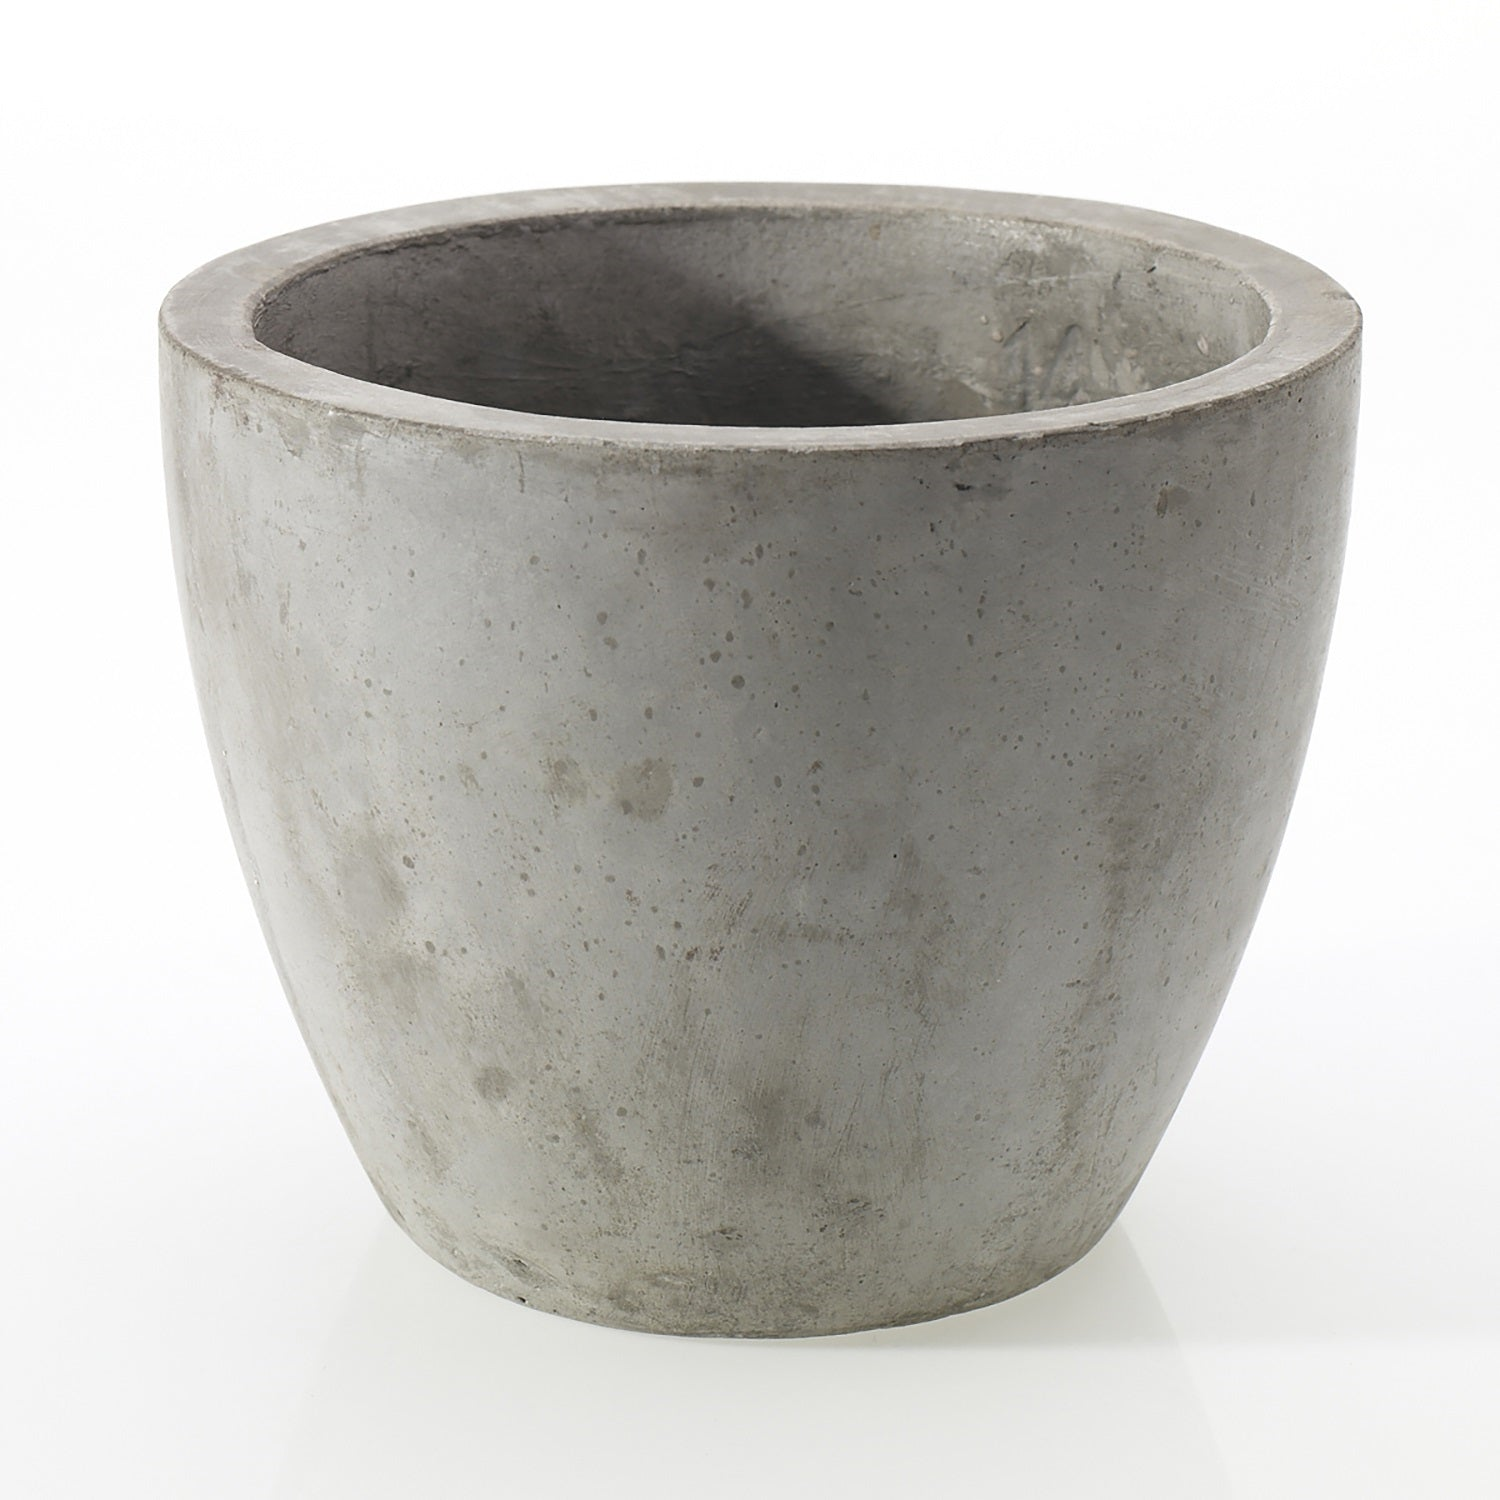 "7"" Concrete Pot in Grey"